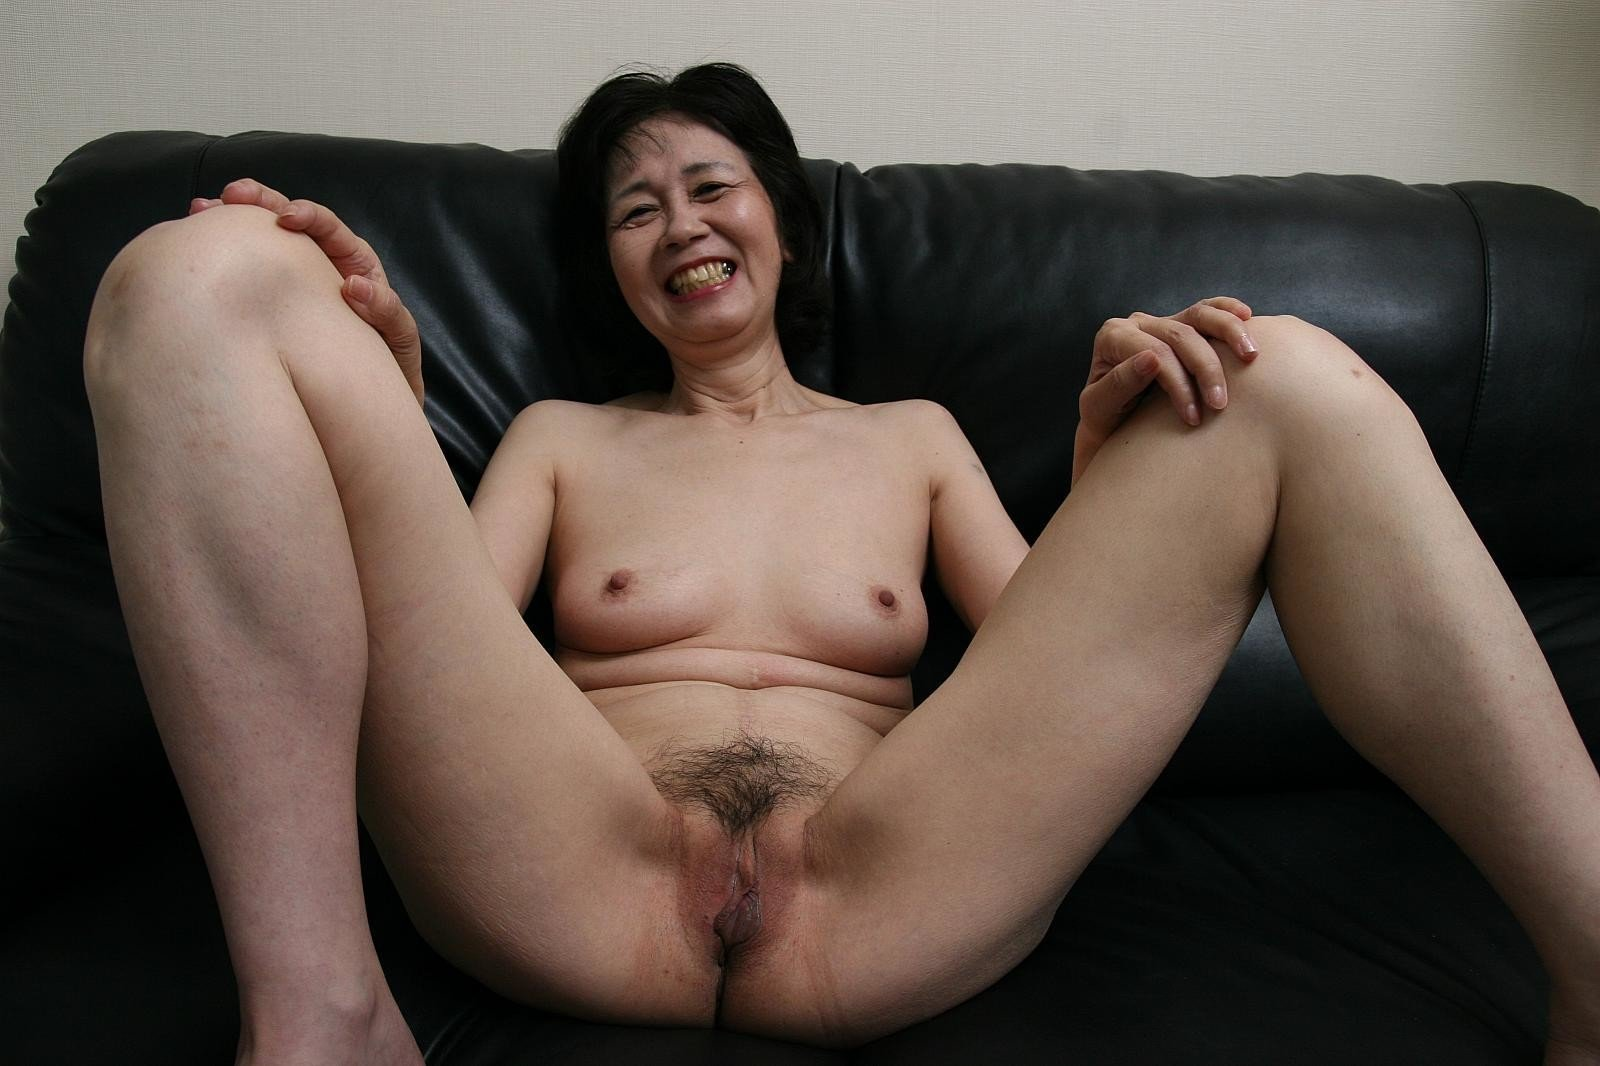 nude-grandma-indonesia-how-to-give-girls-oral-sex